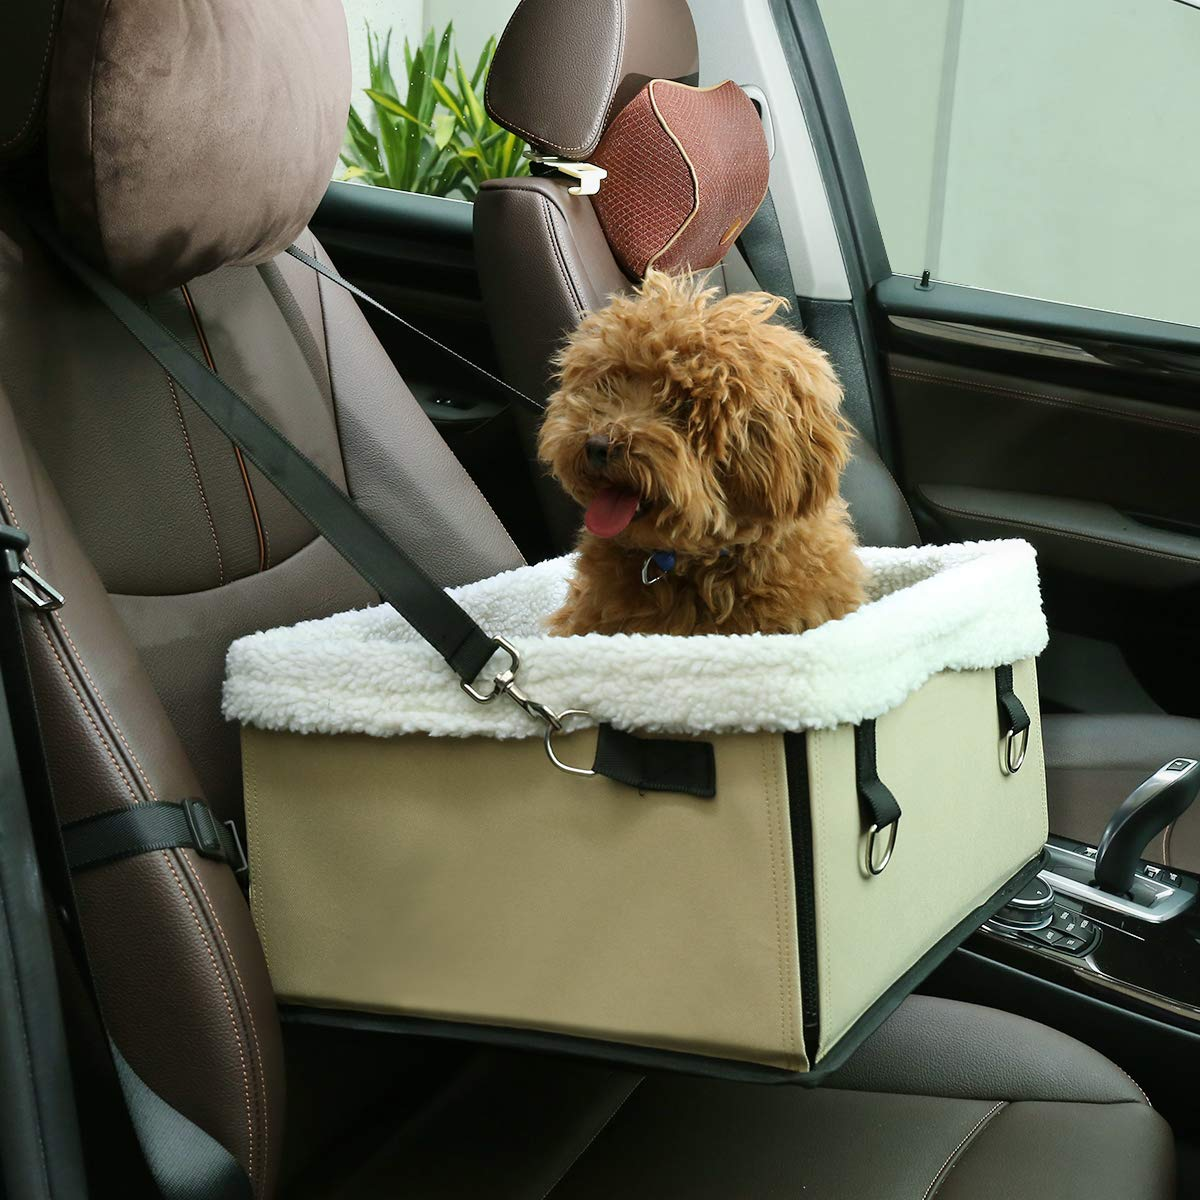 Docamor Pet Booster Seat with Cushion Inside, Collapsible Dog Booster Car Seat for Small and Medium Dogs, Puppies, and Pets